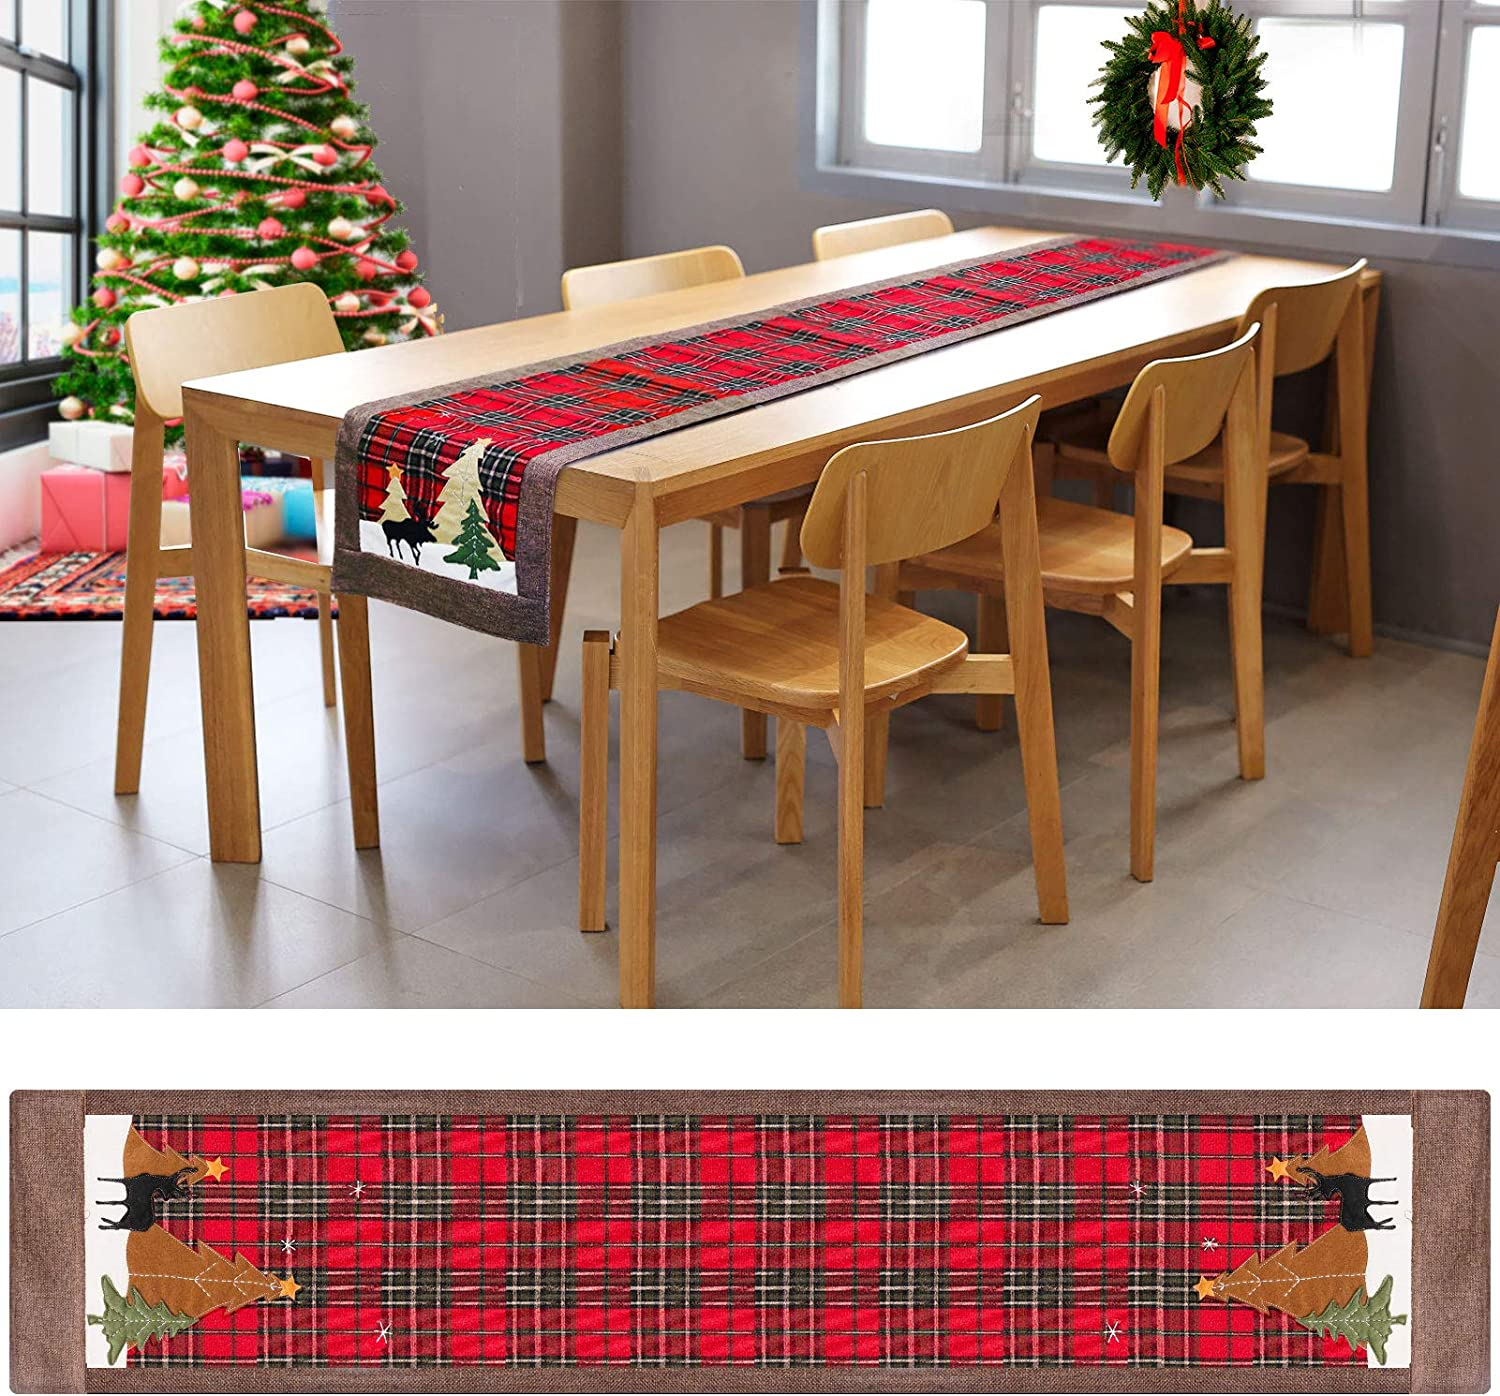 """Allnice Christmas Table Runner, 72in Table Runner Christmas Cotton & Linen Tabletop Collection Plaid Christmas Runner for Table Home Decoration (14"""" x 72"""")"""